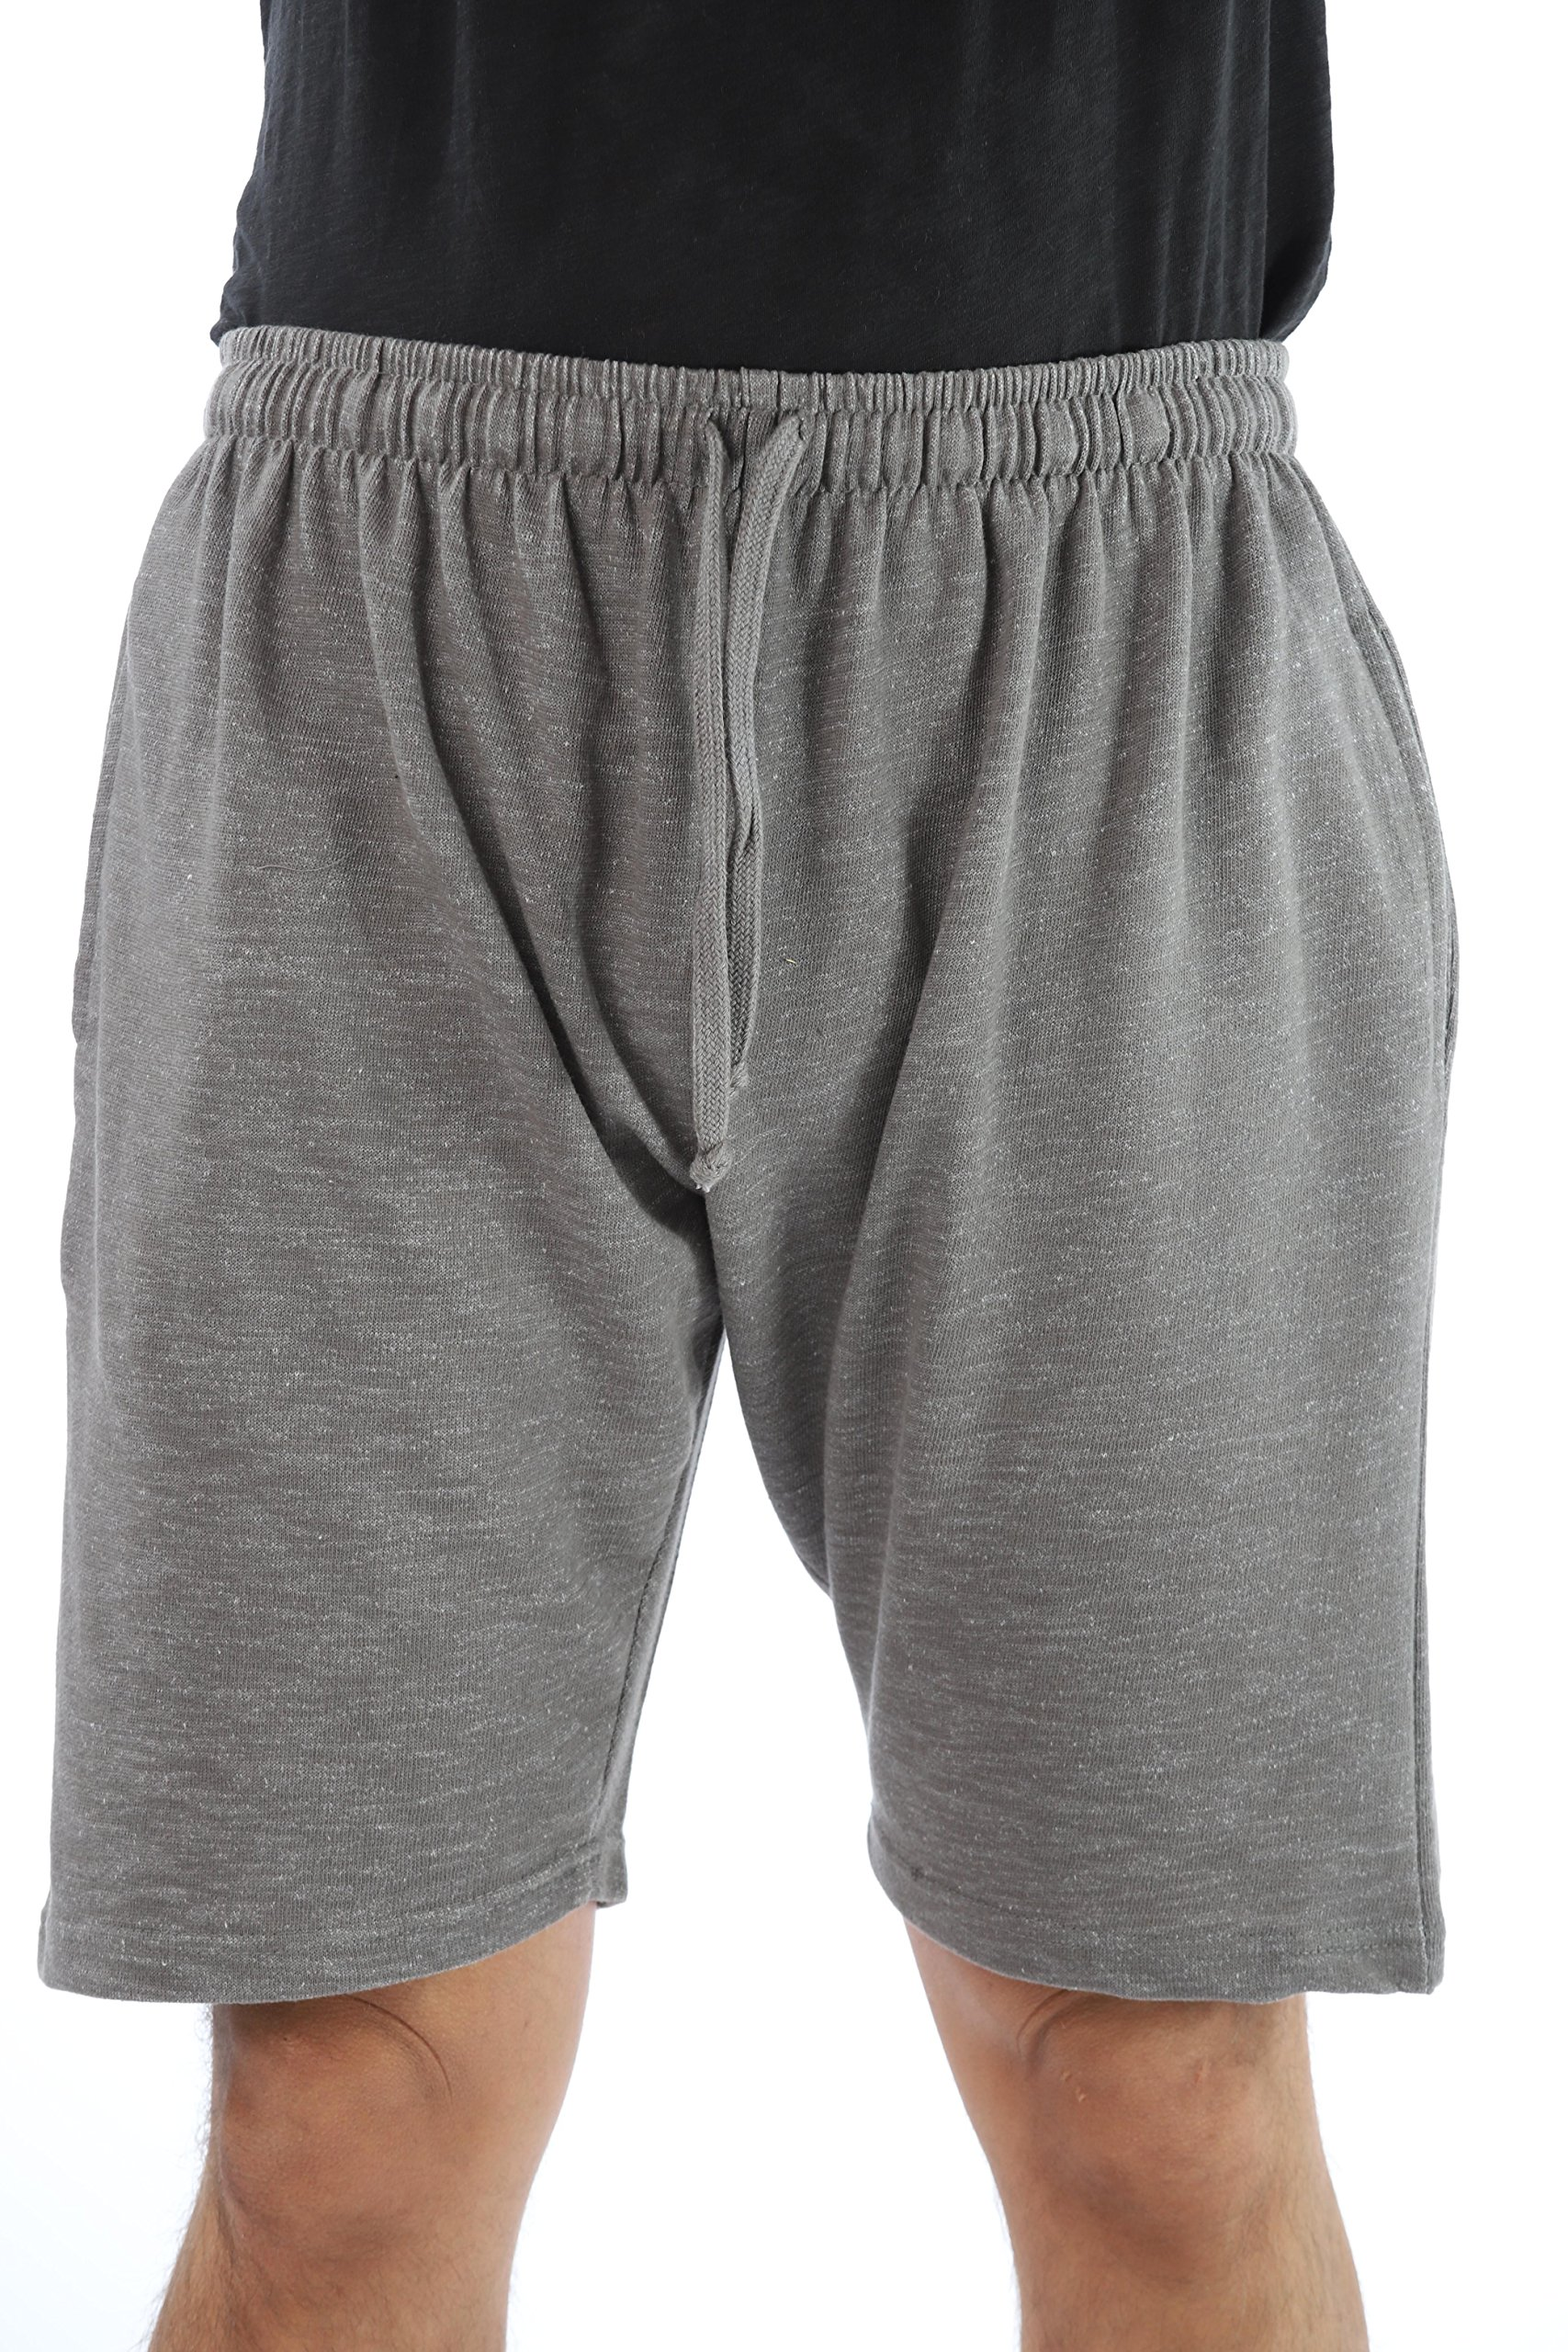 At The Buzzer Men's Sweat Shorts Sleepwear PJS 14502-GRY-XXXL